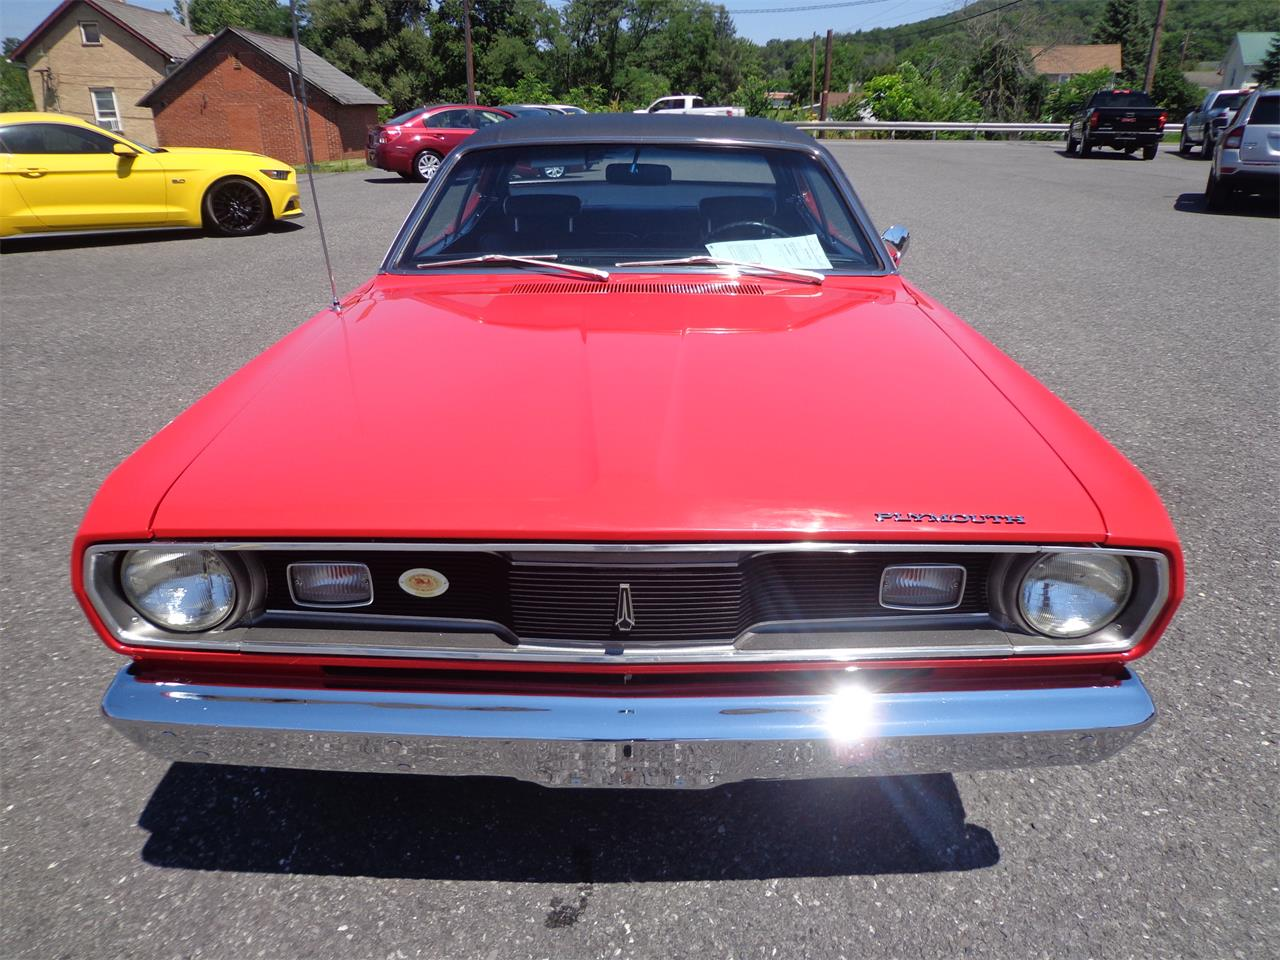 Large Picture of Classic 1970 Plymouth Duster located in MILL HALL Pennsylvania - $45,995.00 - LO30